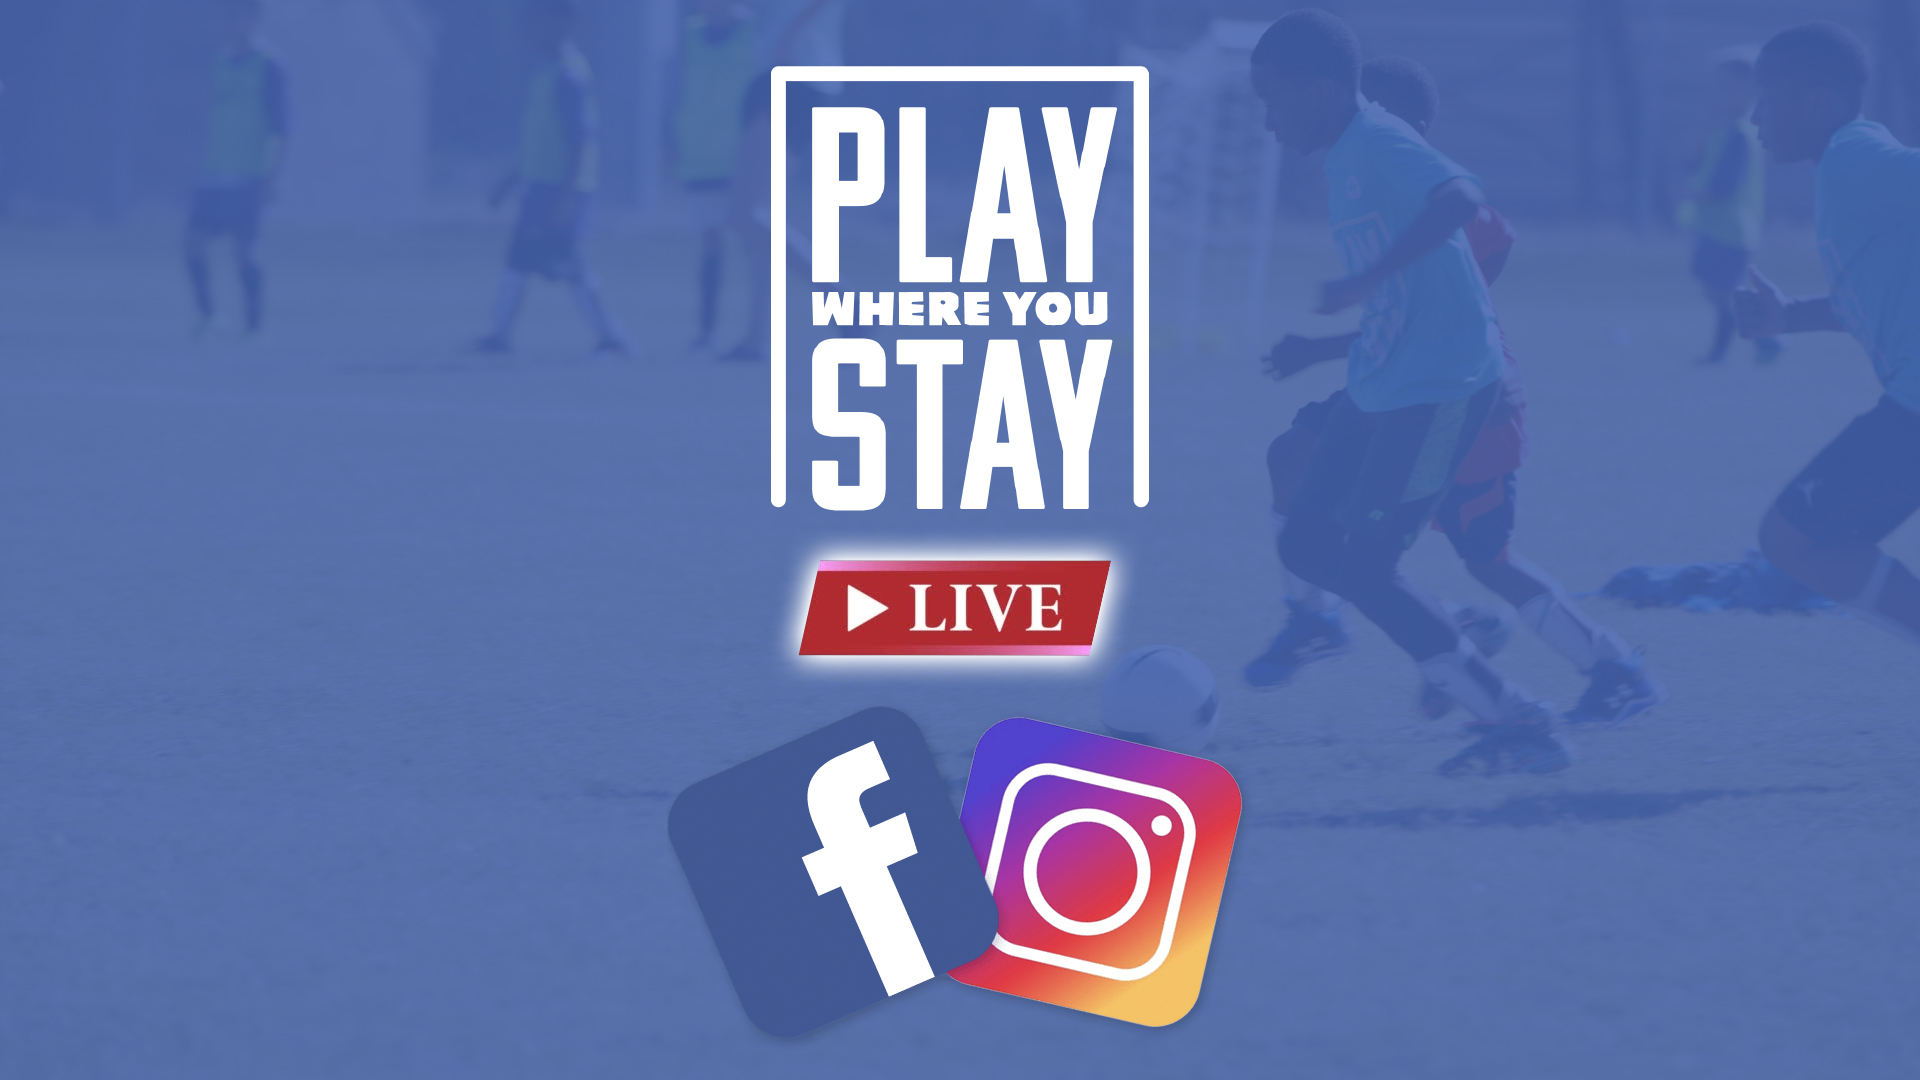 Play Where You stay live with social media icons